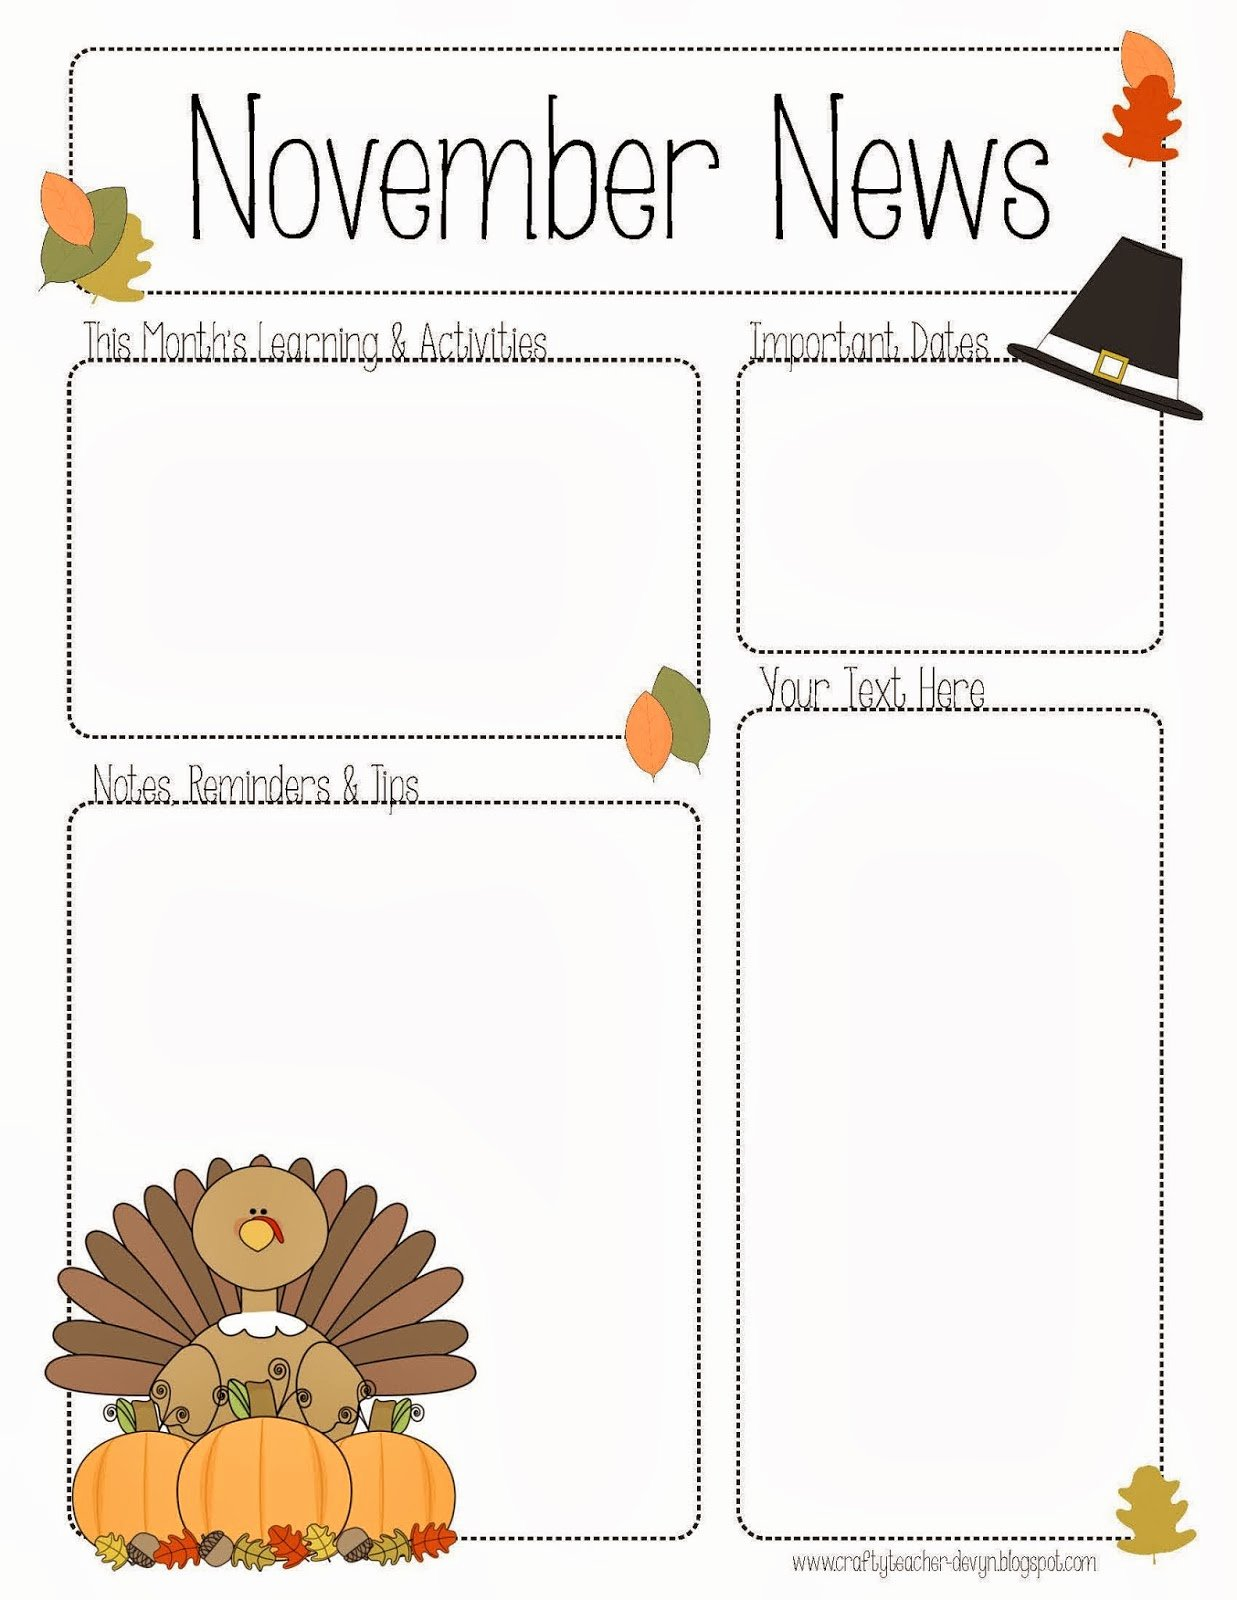 Preschool Newsletter Template Editable Inspirational November Newsletter for Preschool Pre K Kindergarten